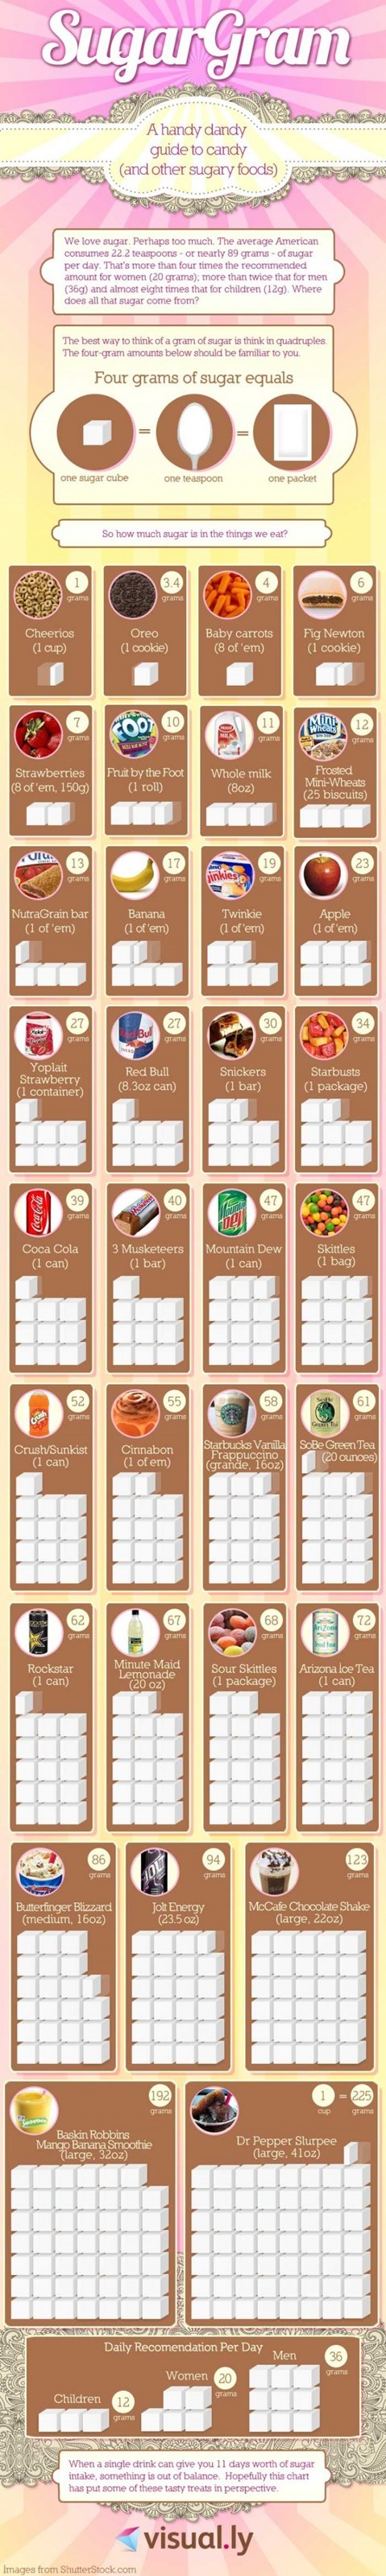 sugar,health,food,infographic